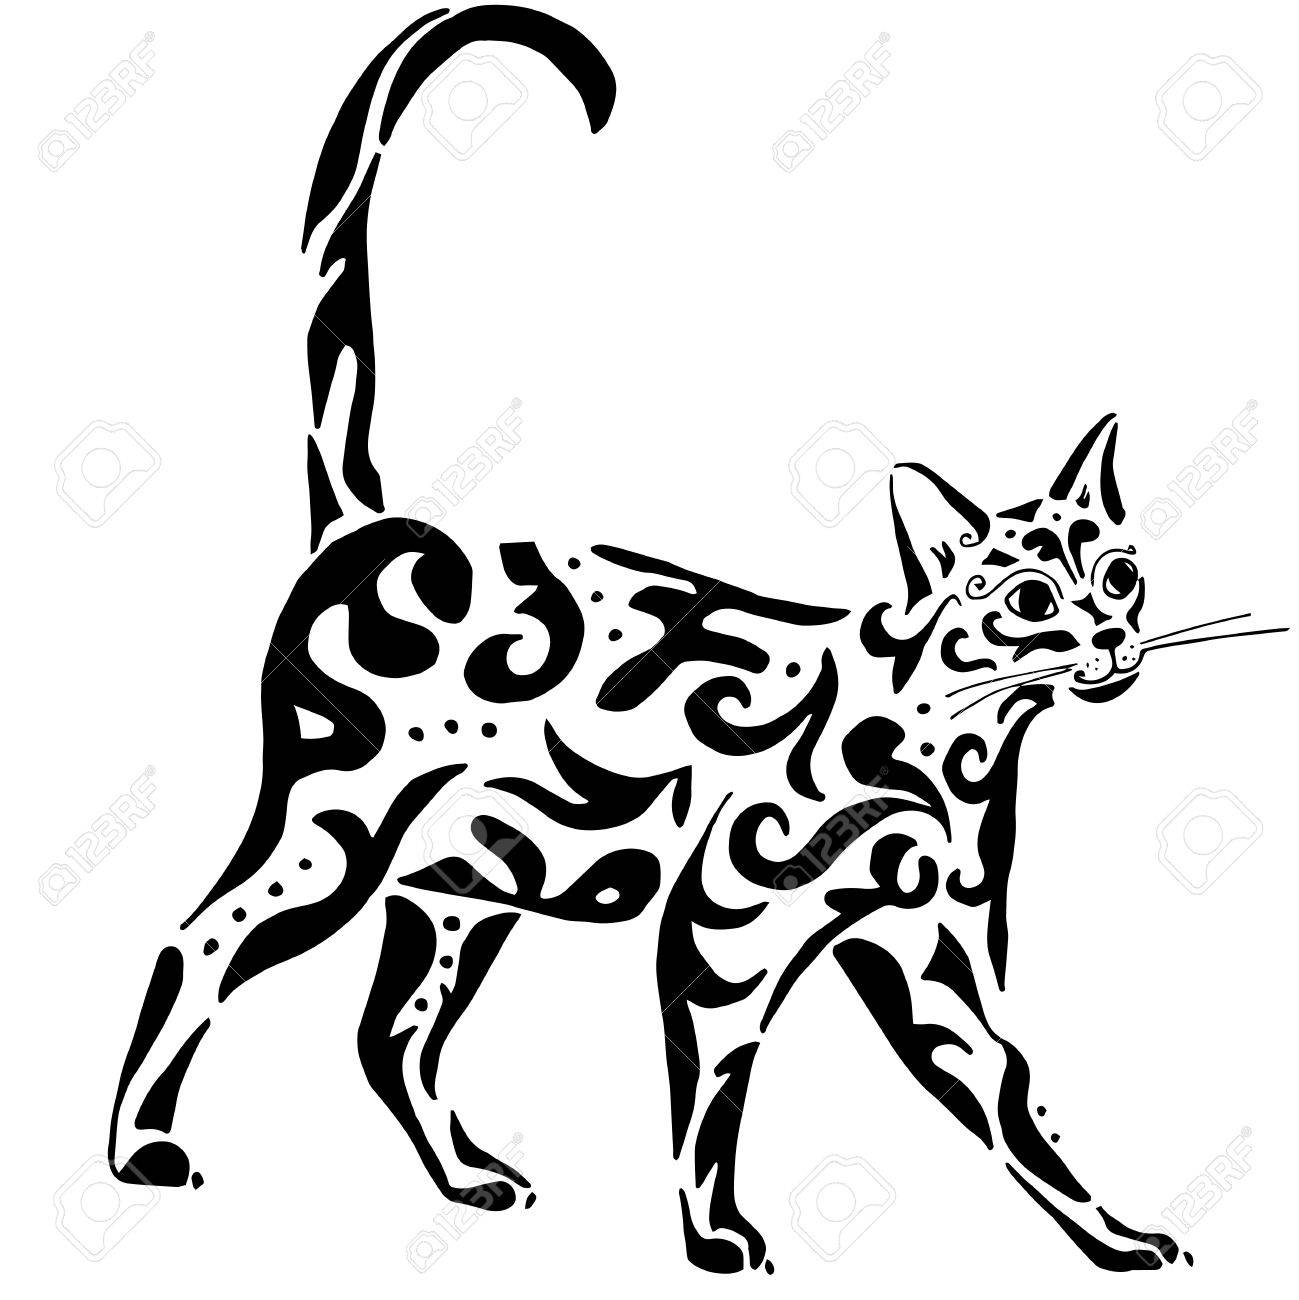 Celtic cats clipart jpg library Lineart cat - theivrgroup.org 2019 jpg library